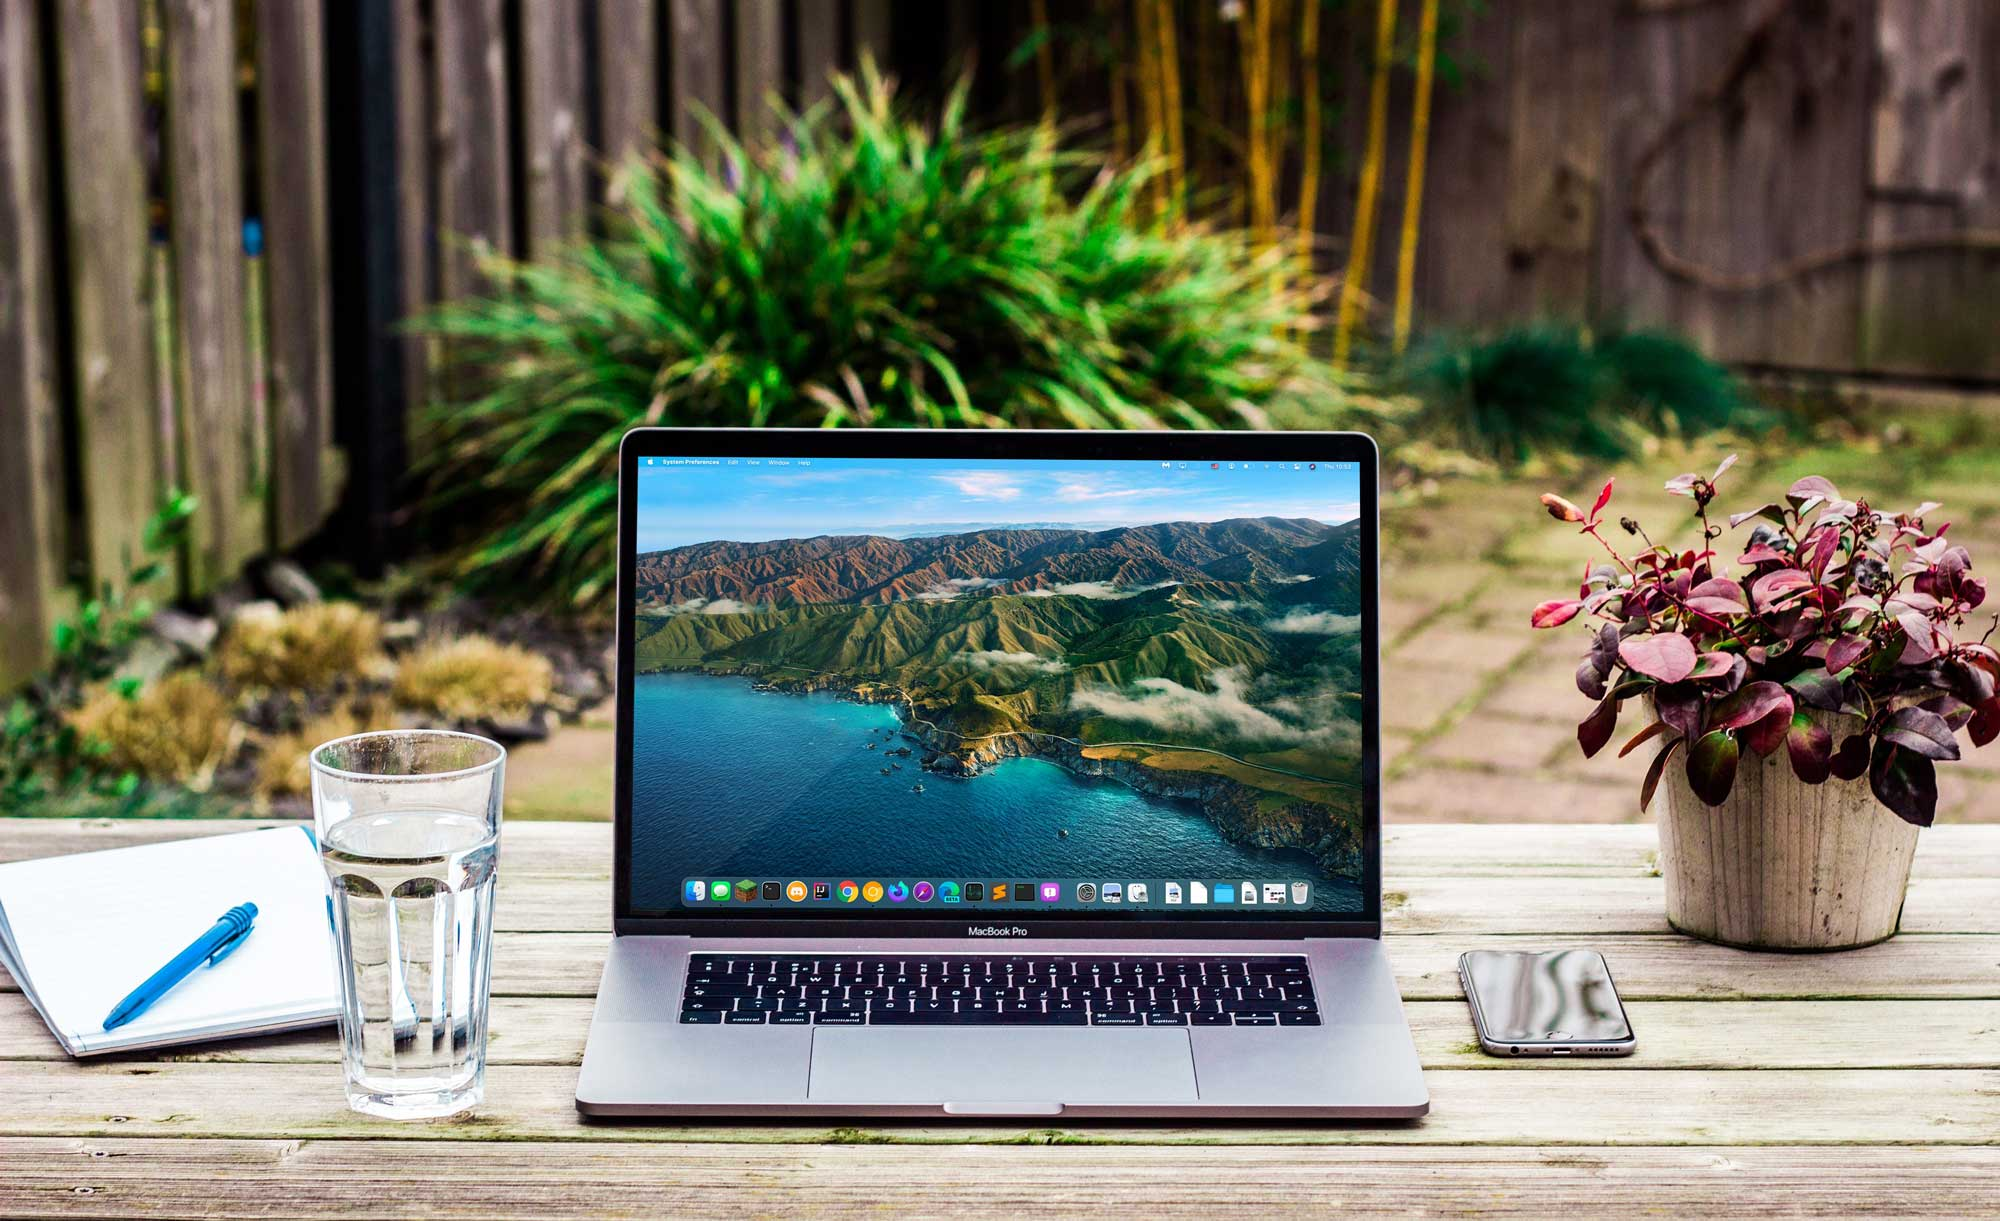 10 Must Have Items That You Will Find In A Productive Backyard Office